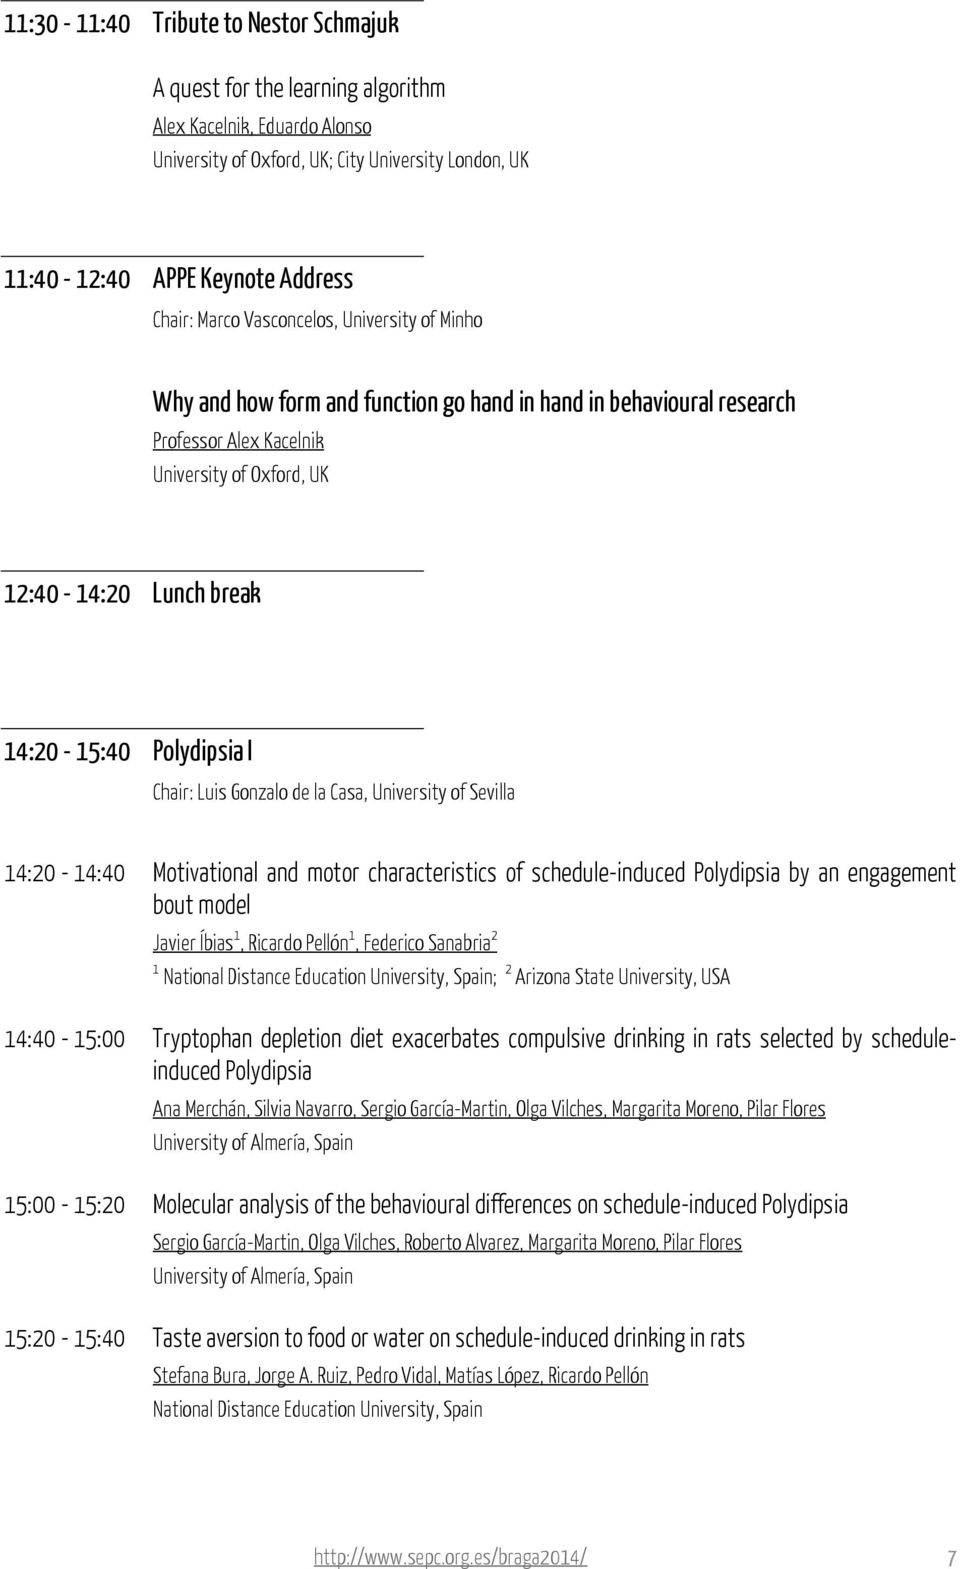 Polydipsia I Chair: Luis Gonzalo de la Casa, University of Sevilla 14:20-14:40 Motivational and motor characteristics of schedule-induced Polydipsia by an engagement bout model Javier Íbias 1,